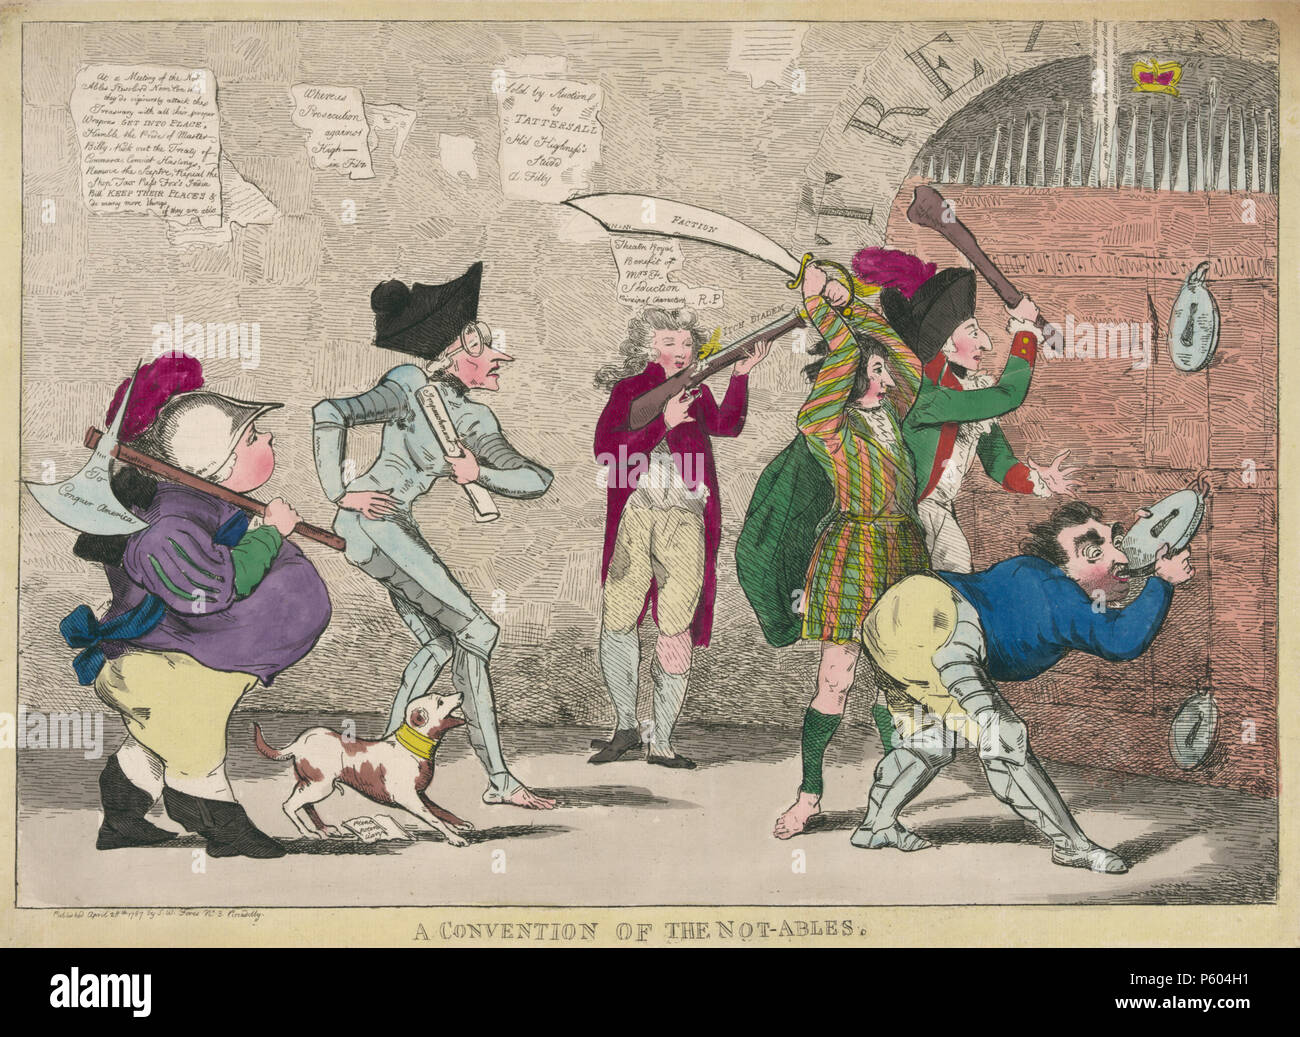 N/A. Lord North, Edmund Burke, Charles Fox, the Prince of Wales, and others attempting to break into the royal treasury. 28 April 1787. Published by S.W. Fores No. 3 Piccadilly 377 Convention of the Not-ables, 1787 - Stock Image